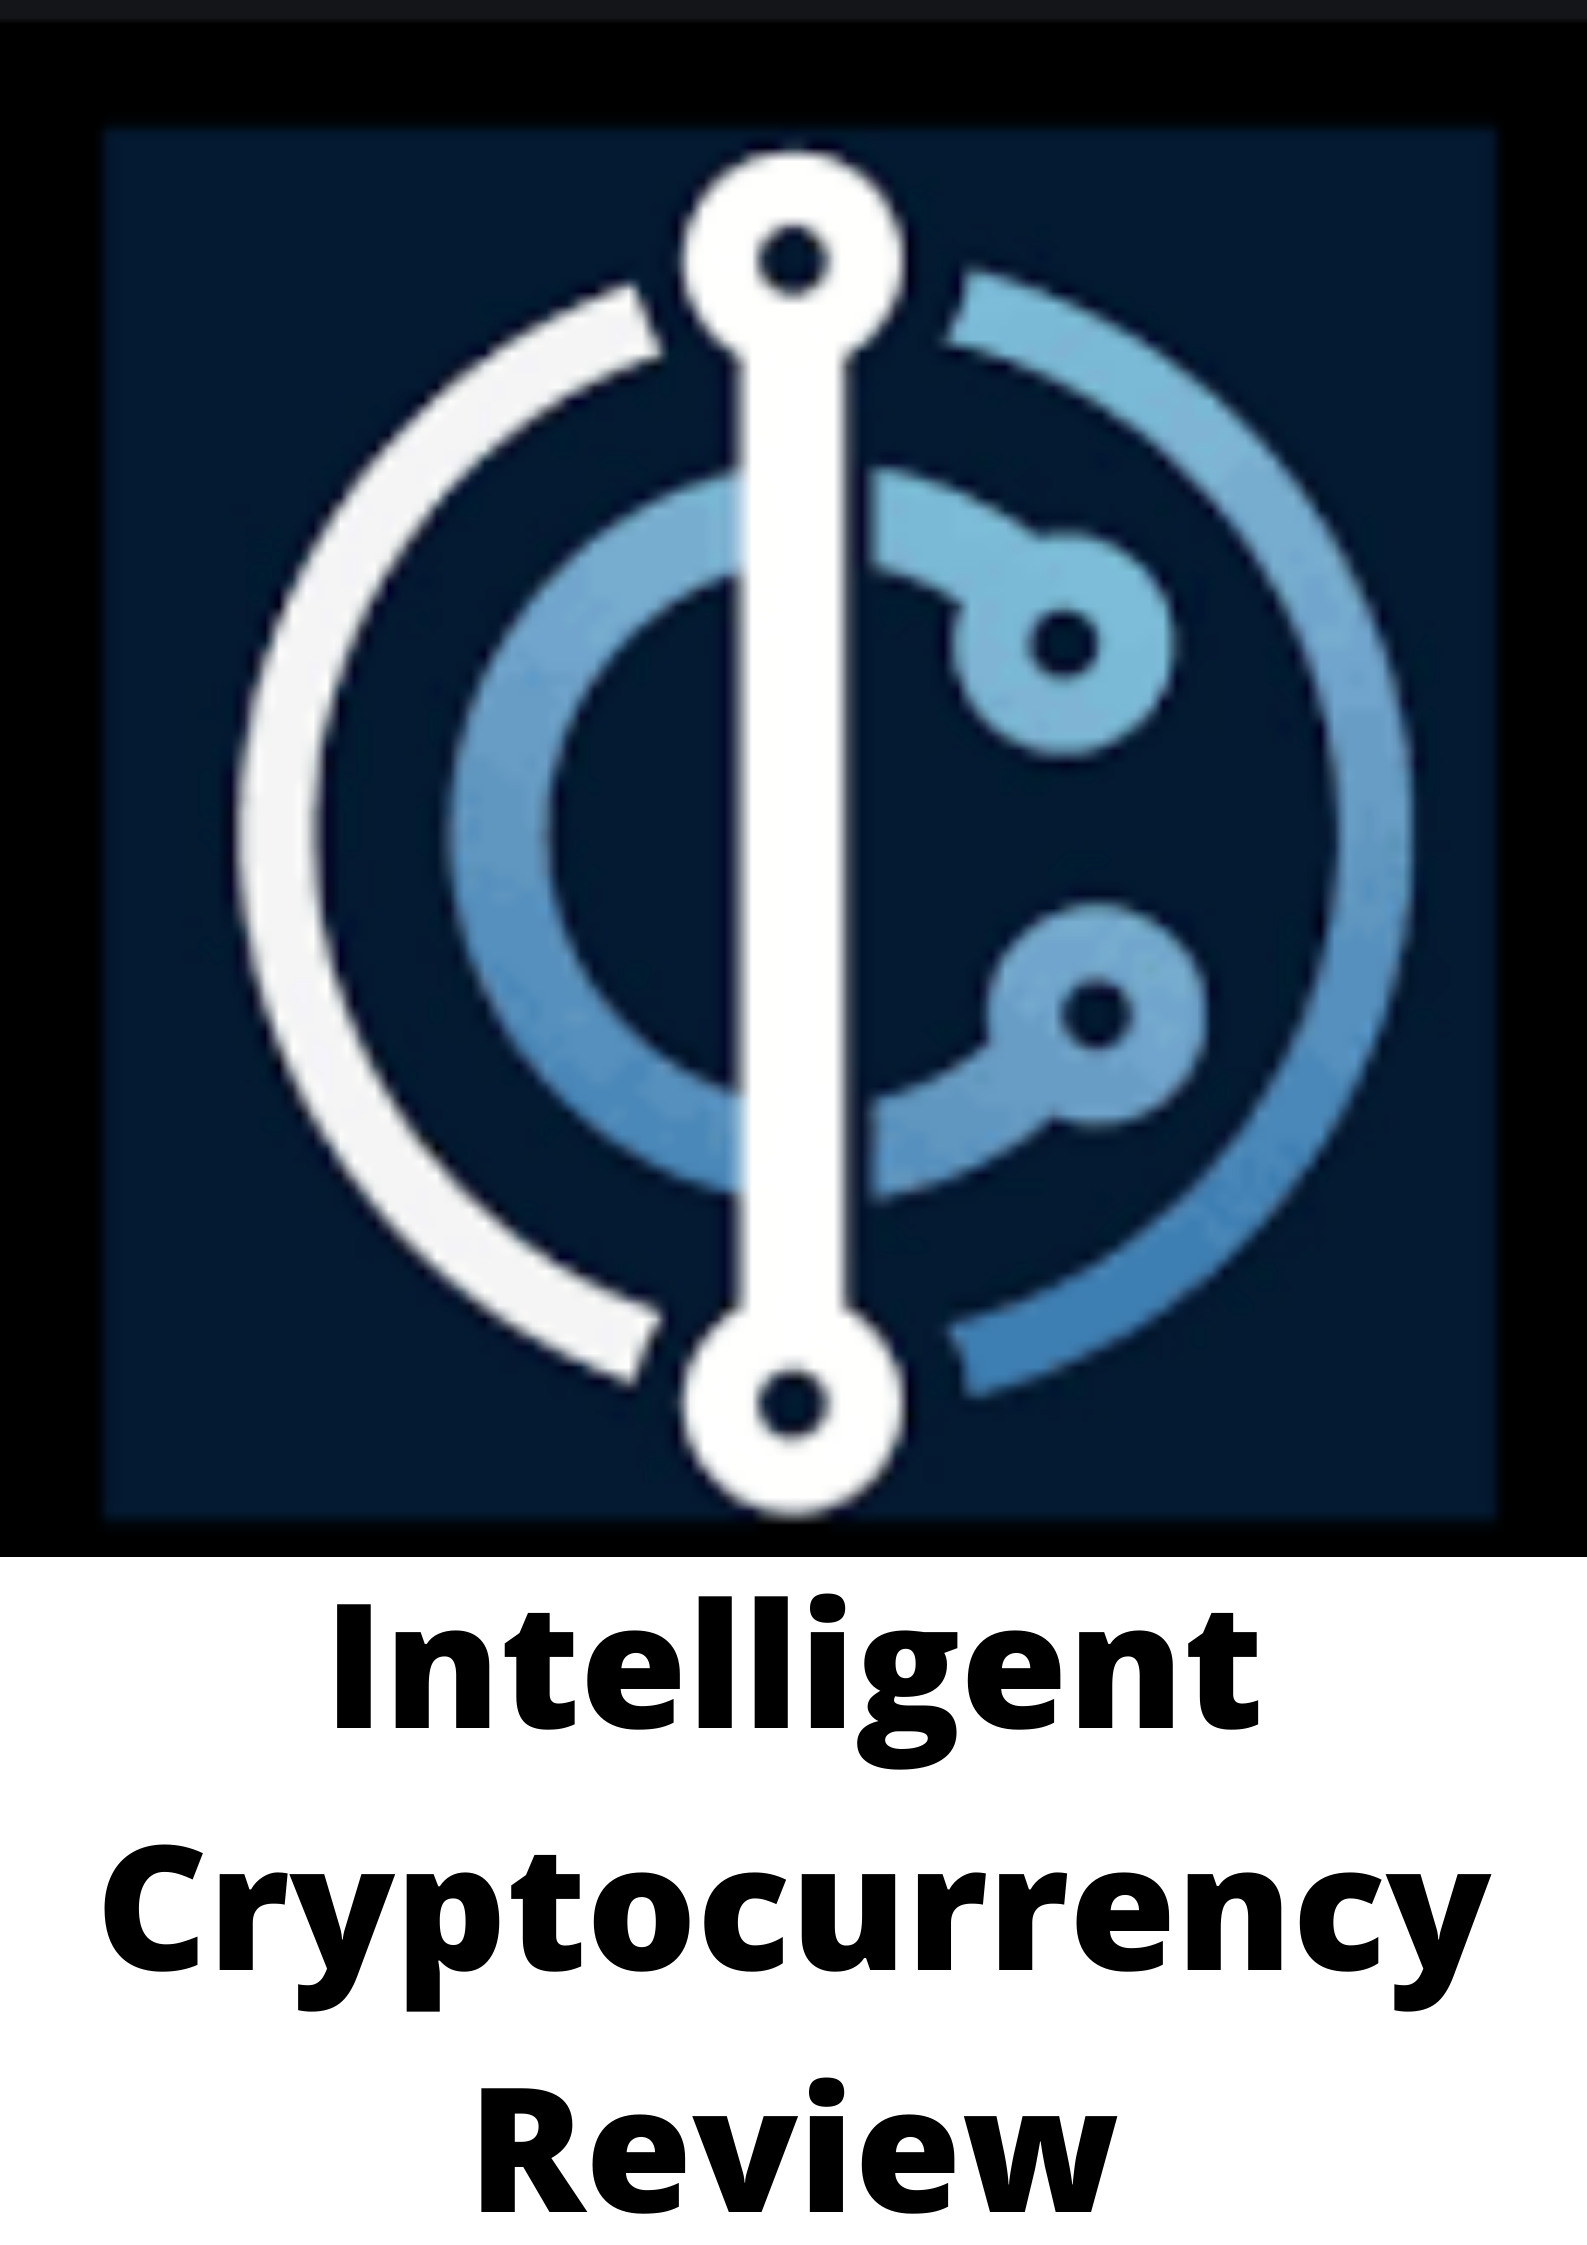 Intelligent cryptocurrency Review 2021